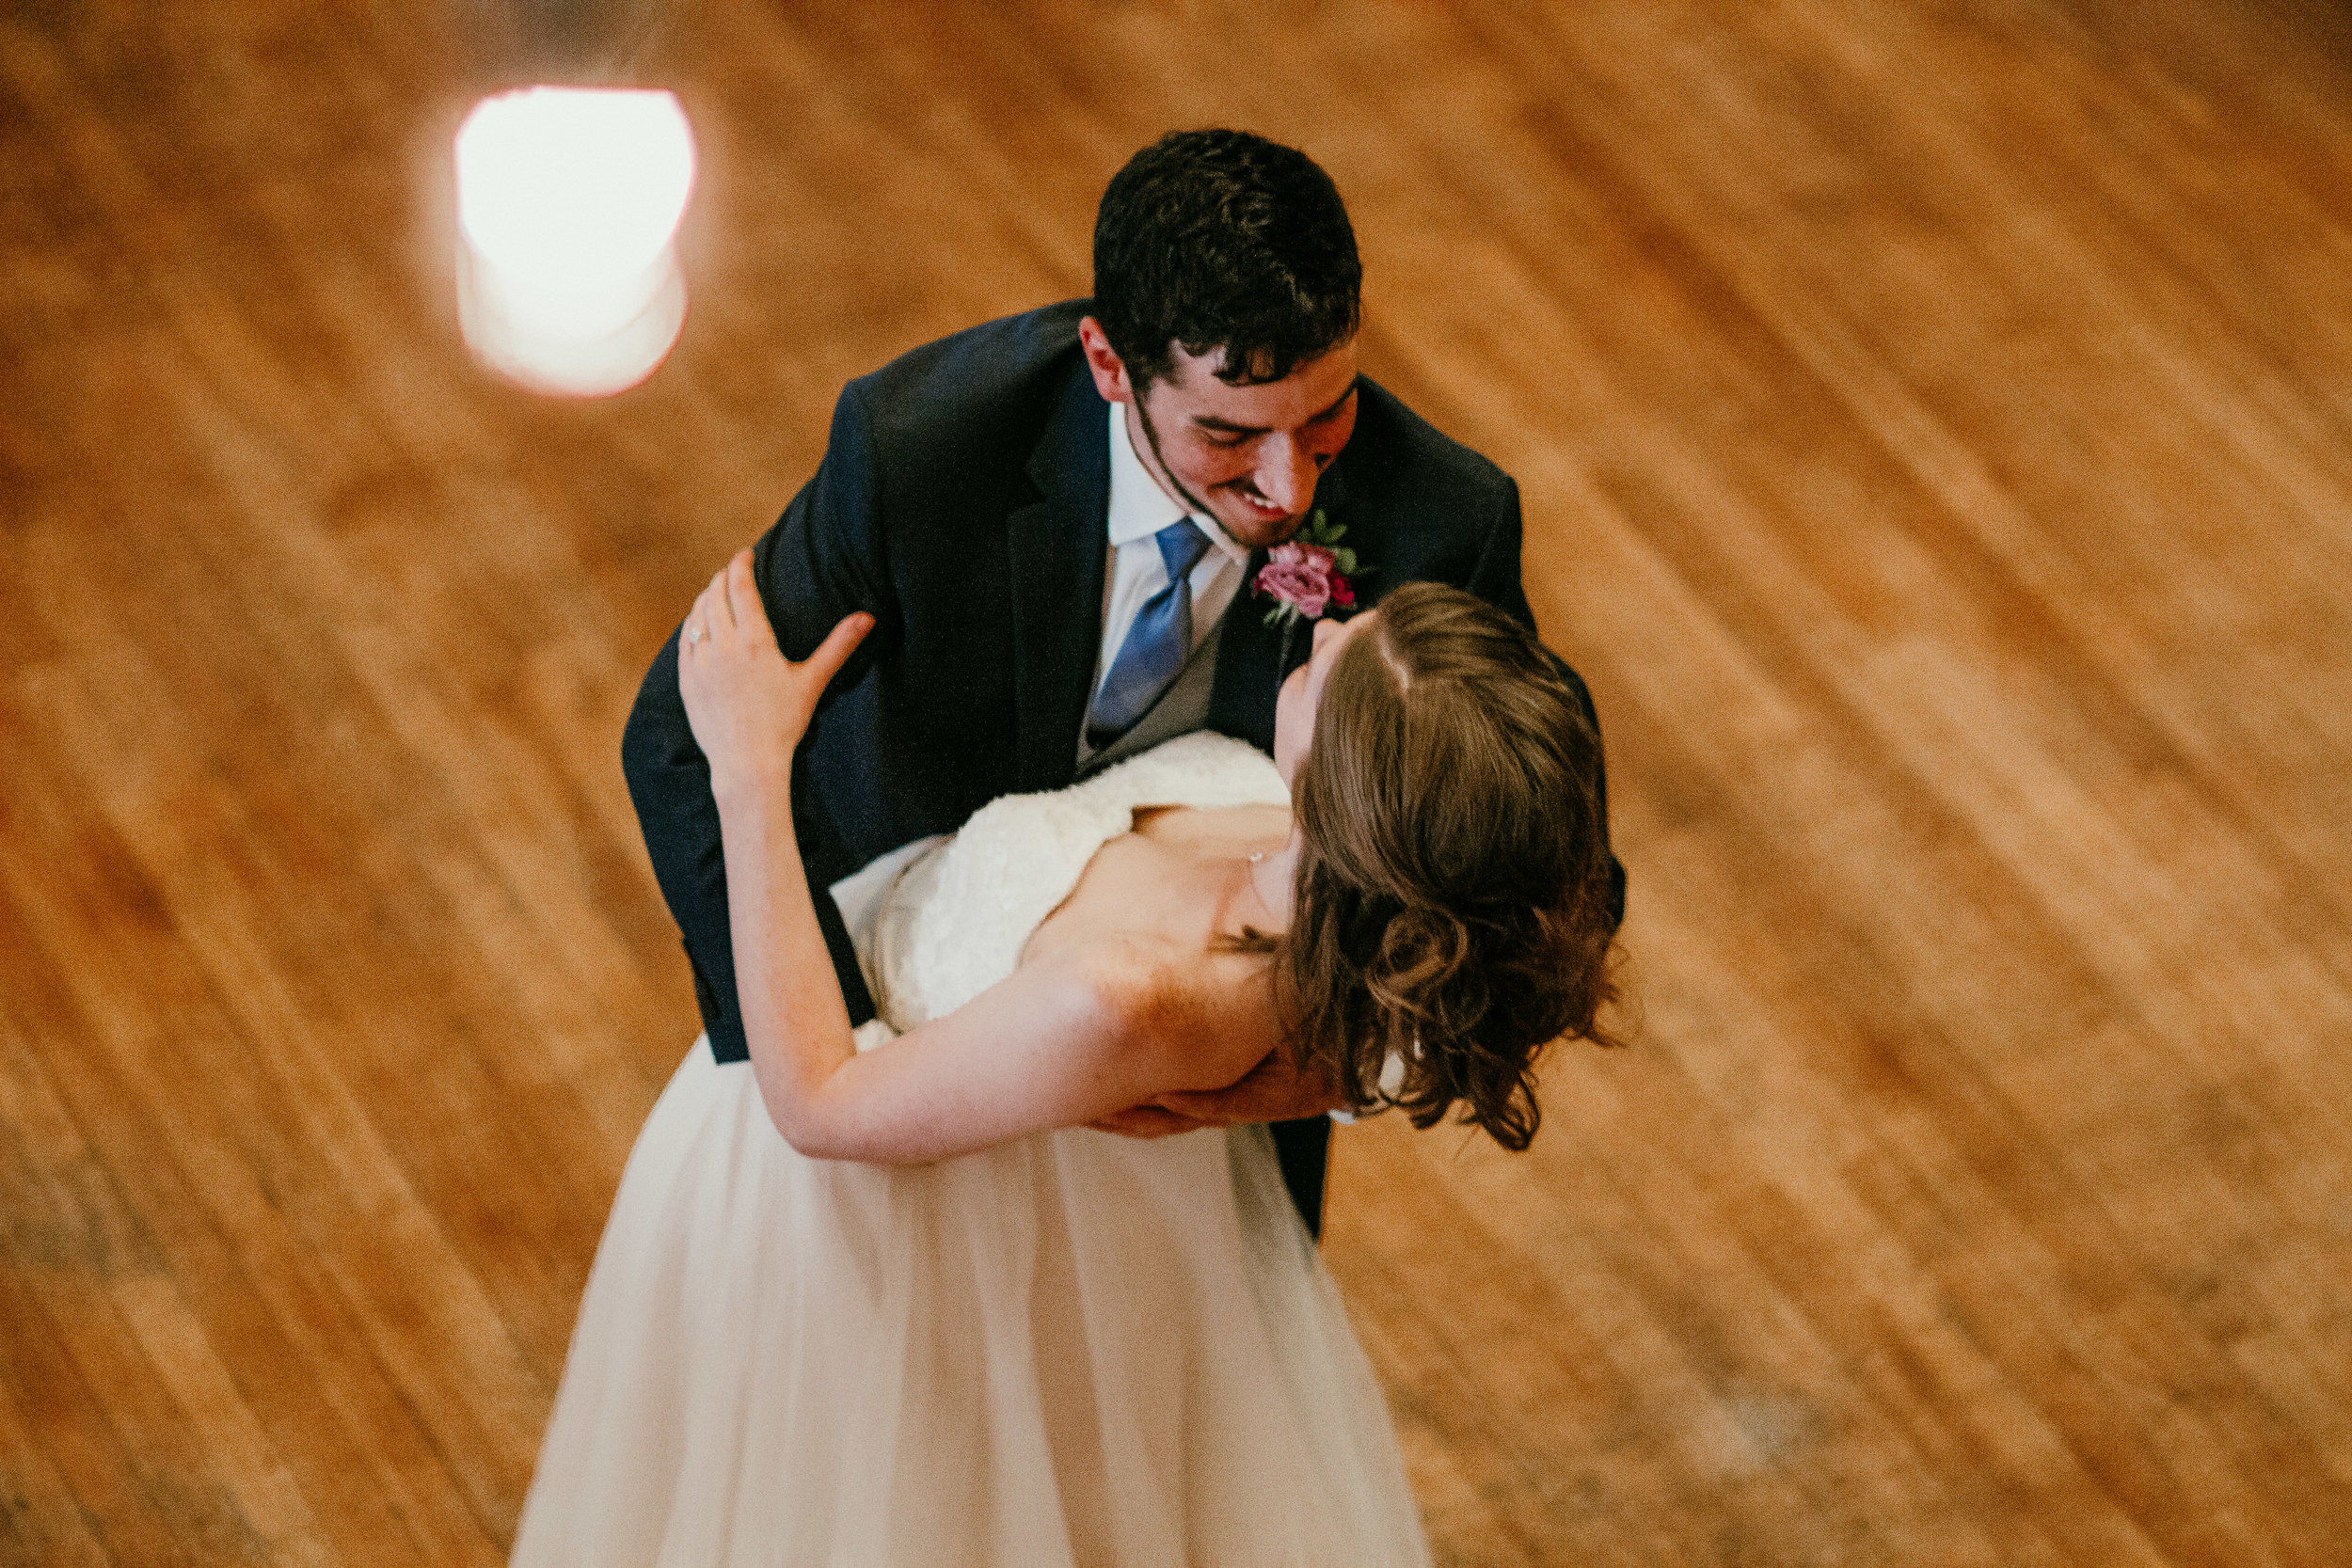 First dance of bride and groom | Shelbie & Jospeh's Summer Love Story : Kansas City Wedding | Hanna Hill Photography